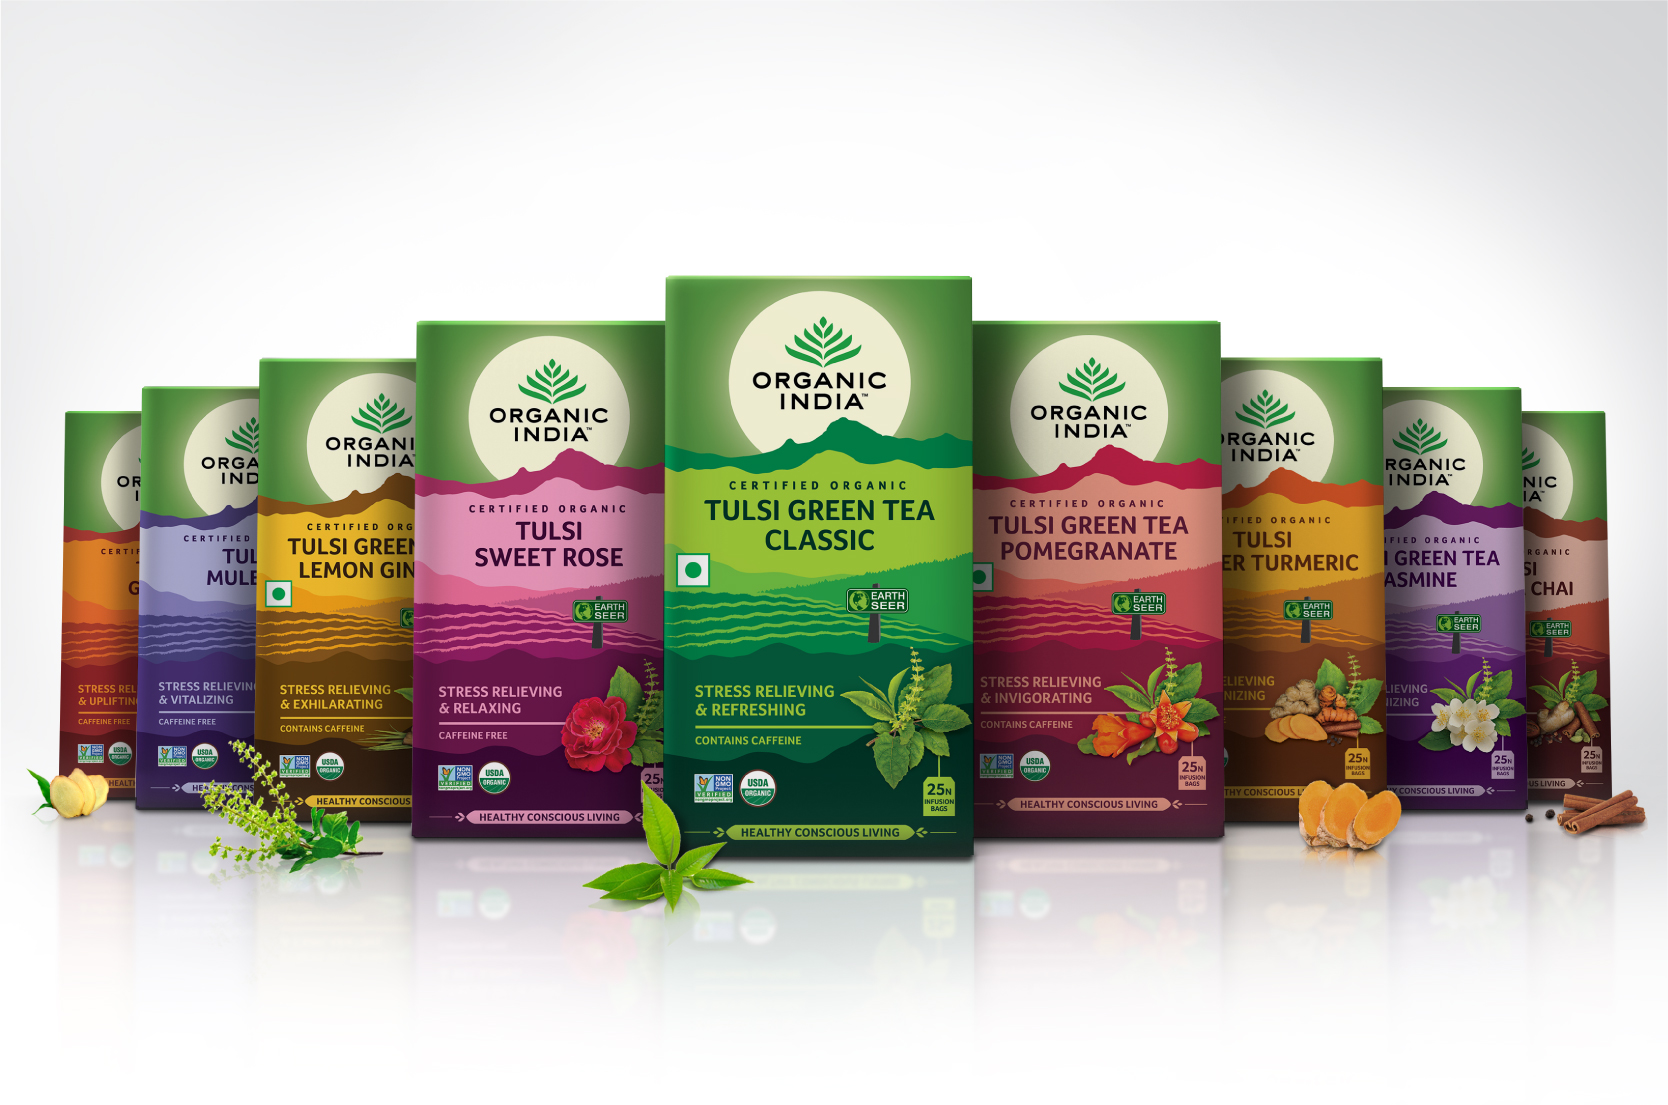 Organic india_Packaging Design_Elephant Design 1.jpg